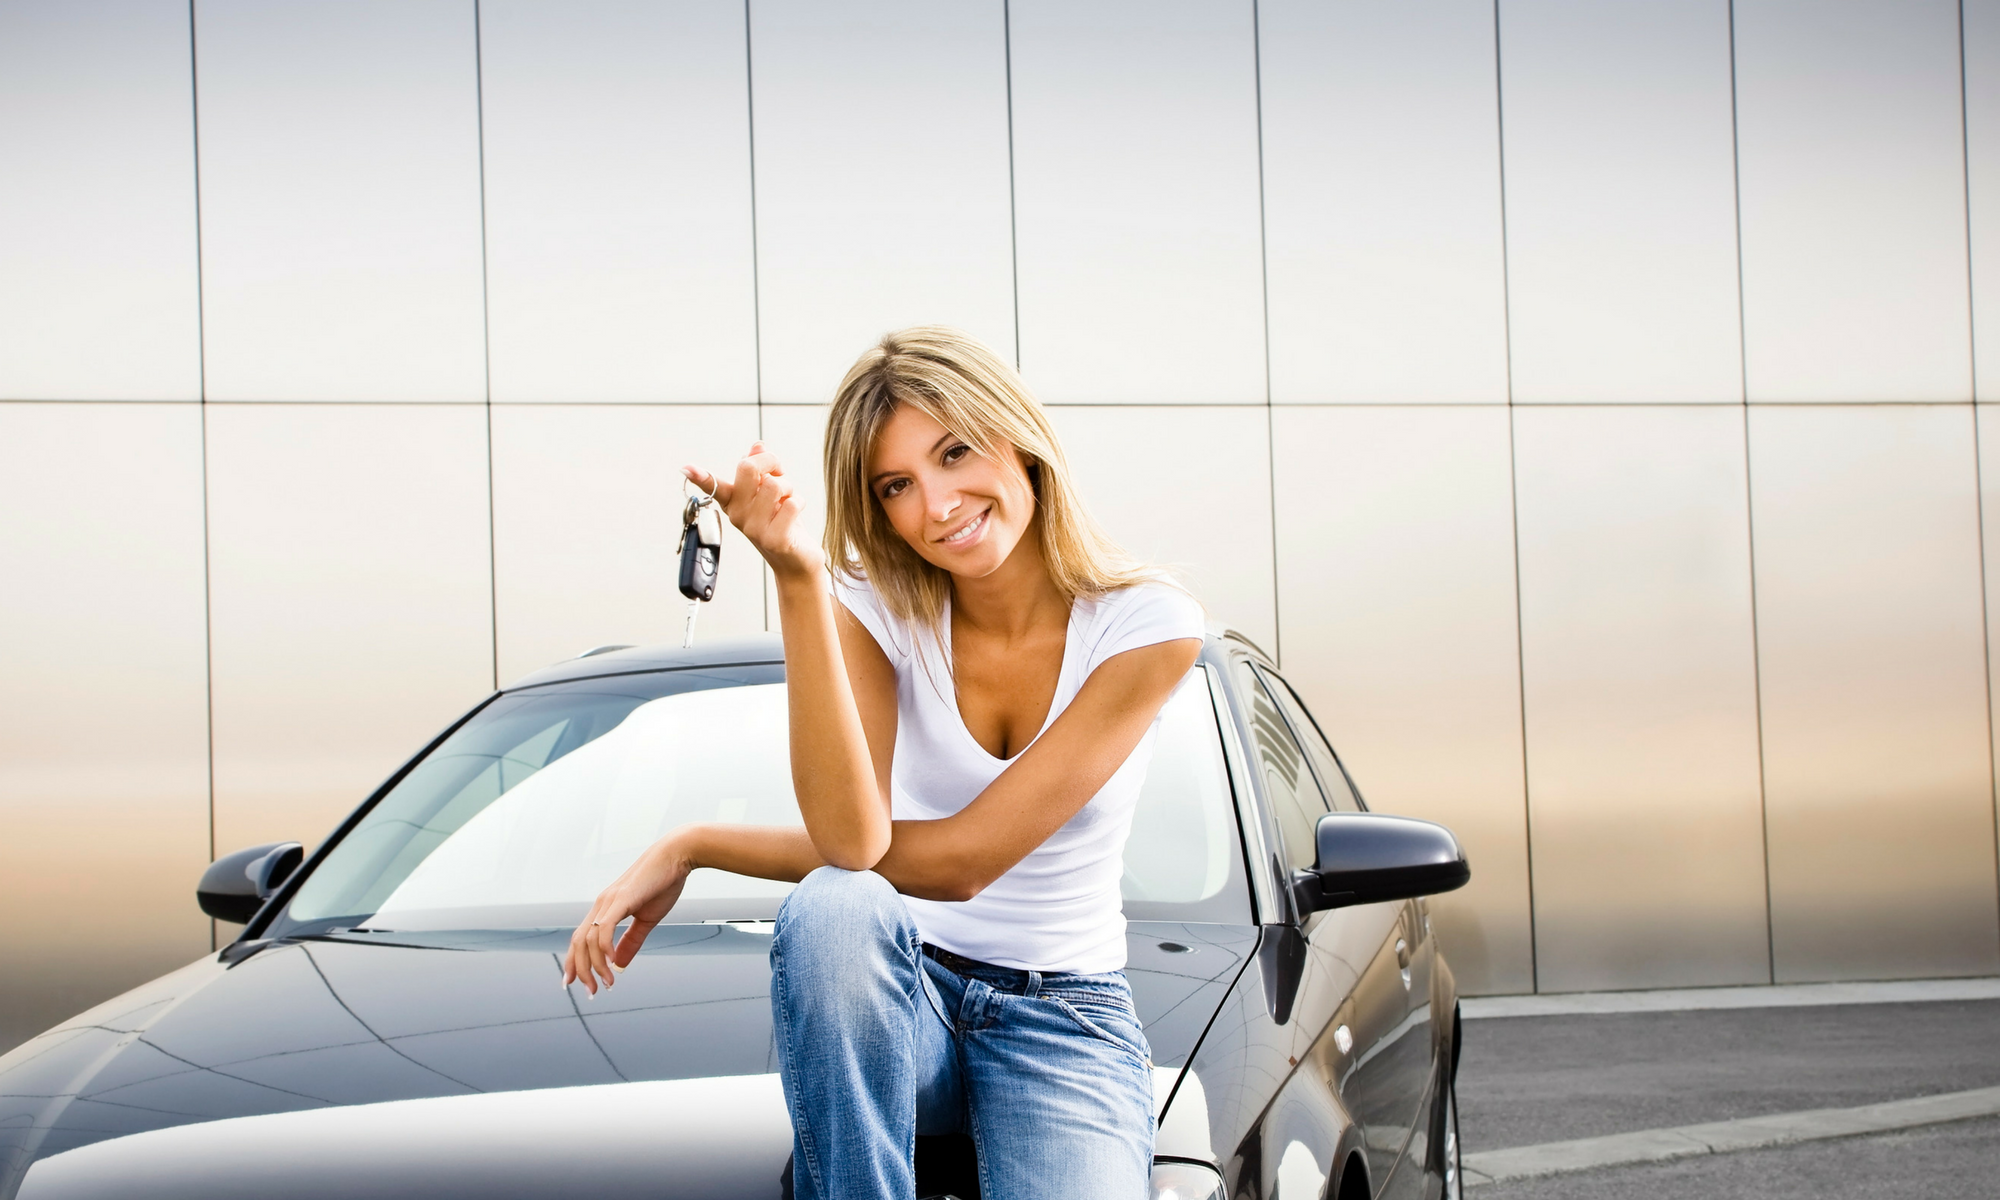 How To Buy A Car Online Safely Learn How To Buy A Car Online Safely